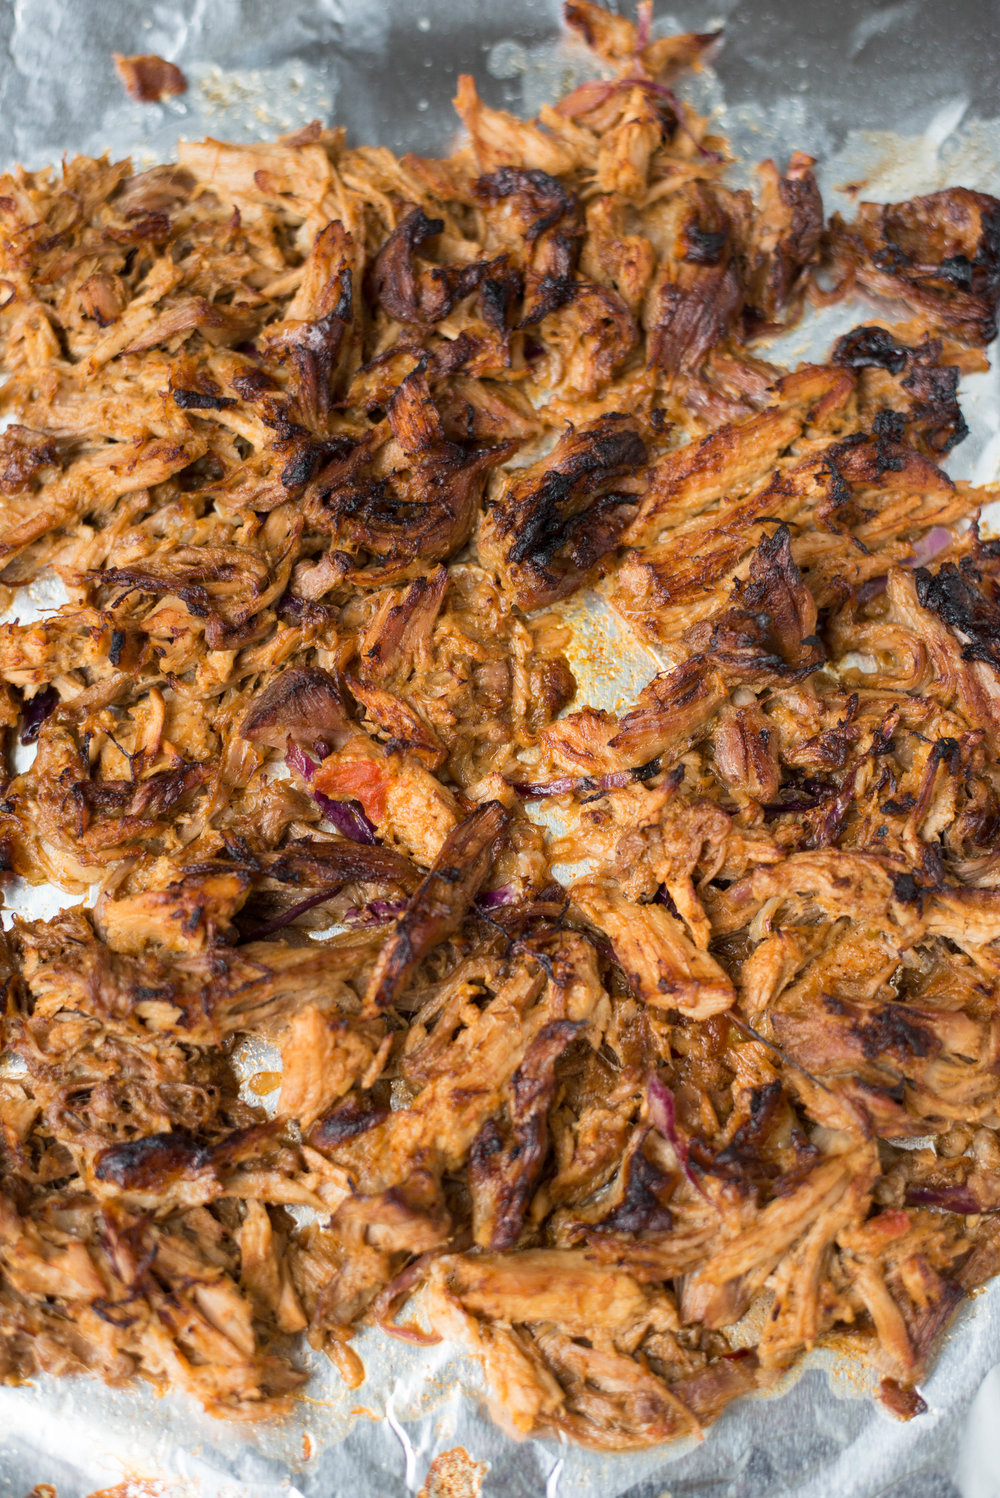 Simple to prepare with easy-to-find ingredients, 6-Ingredient Slow Cooker Carnitas takes just minutes to prep, and the results are insanely delicious.